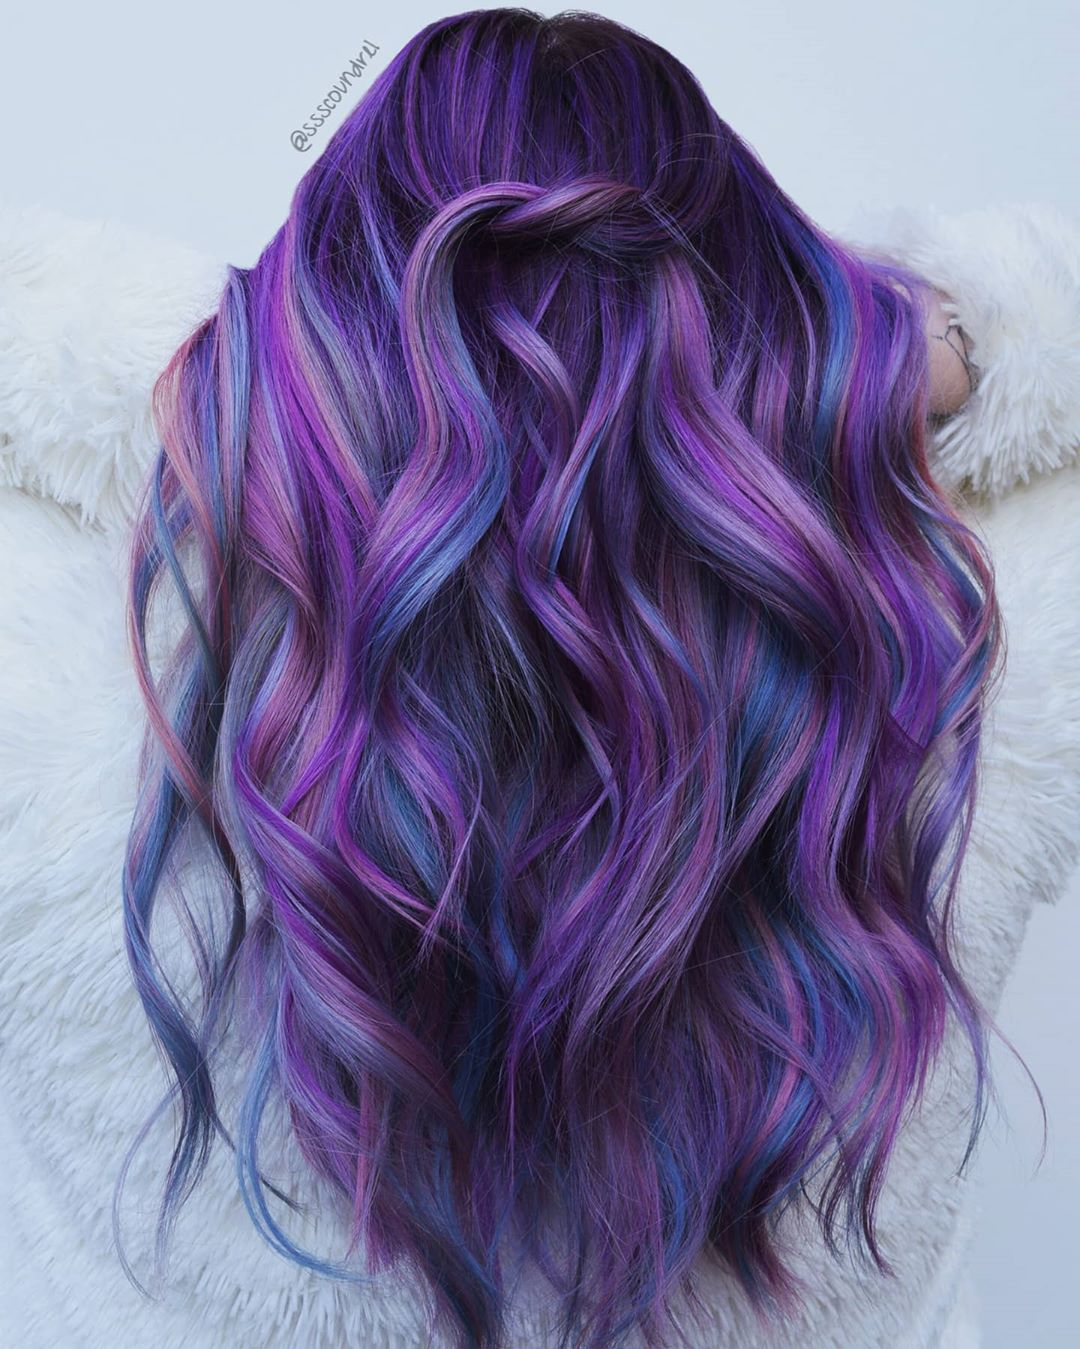 Blue and Purple Hair Highlights